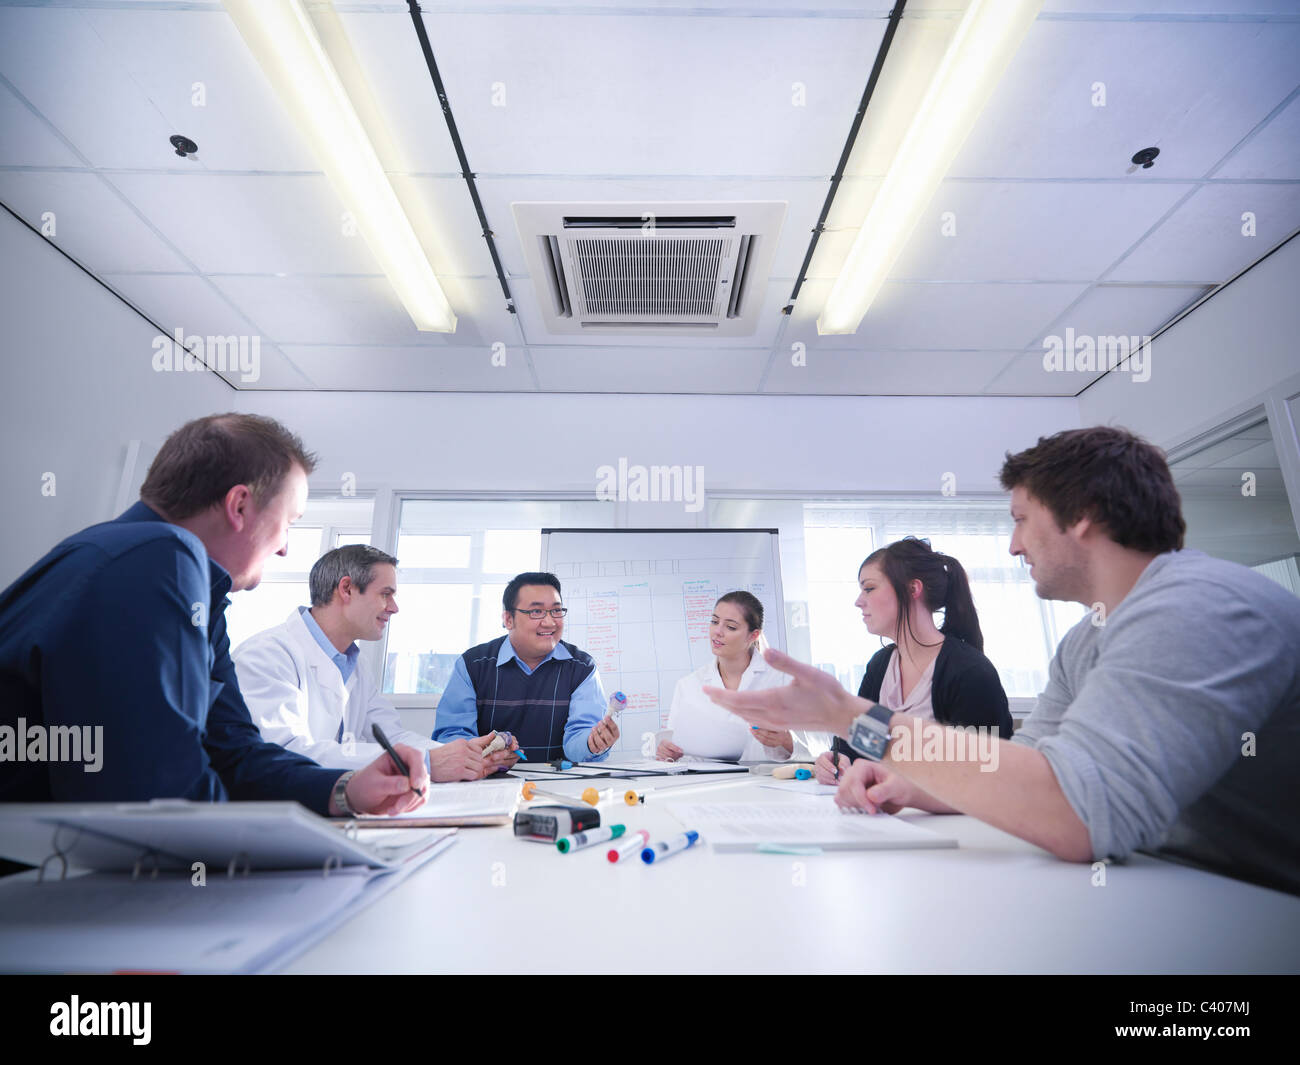 Scientists discuss product prototypes - Stock Image